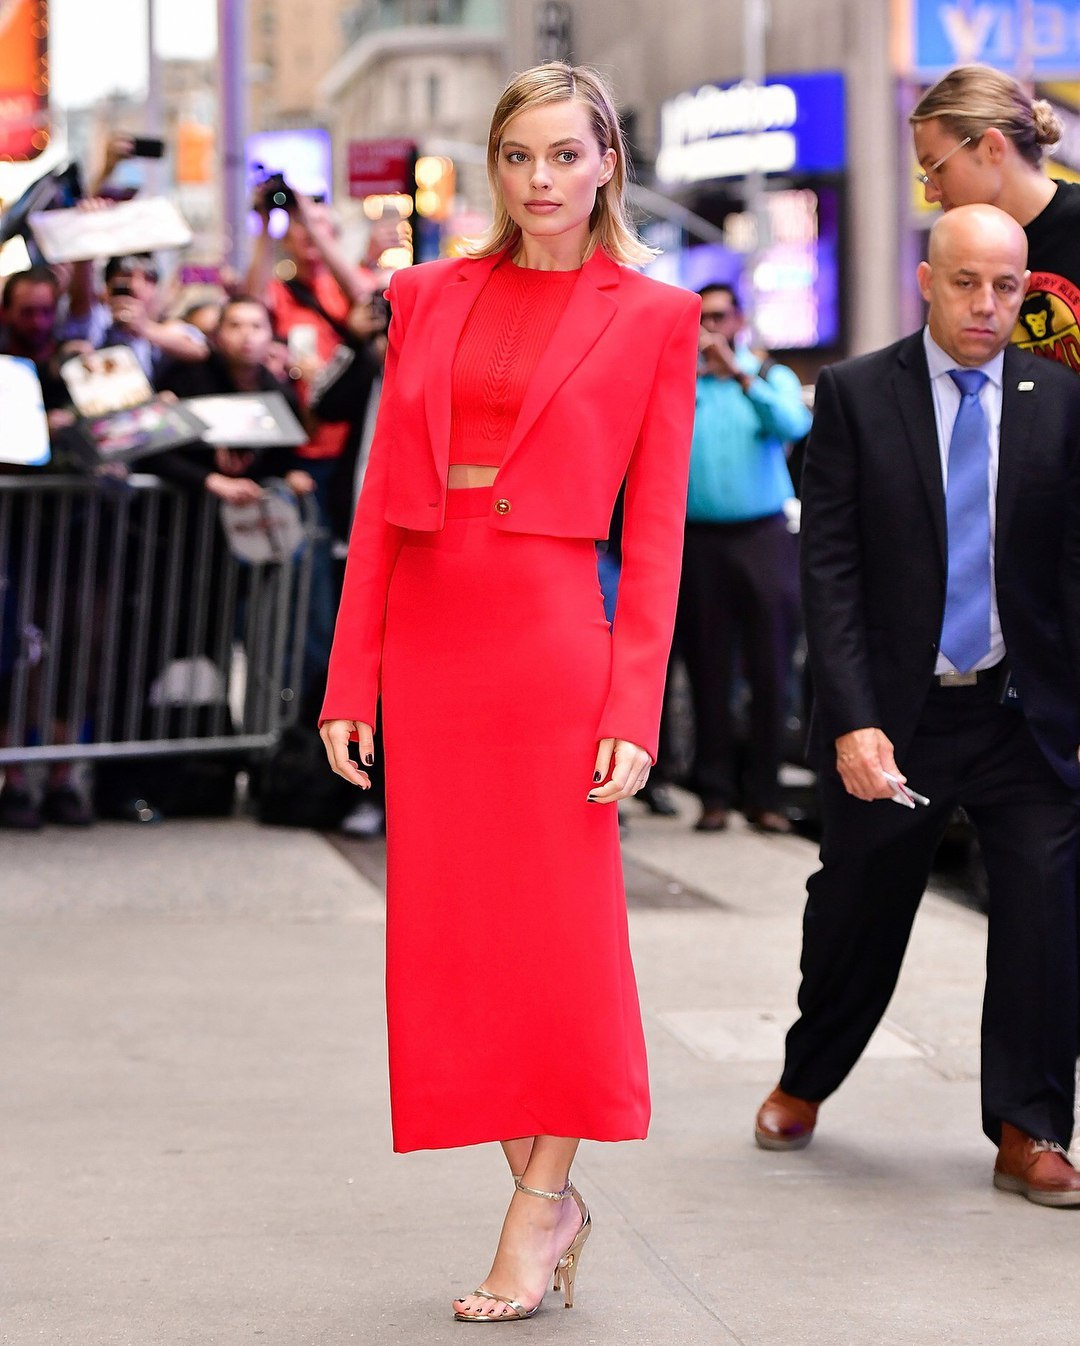 margot-robbie-visits-the-abc-studios-for-good-morning-america-in-new-york-city-1